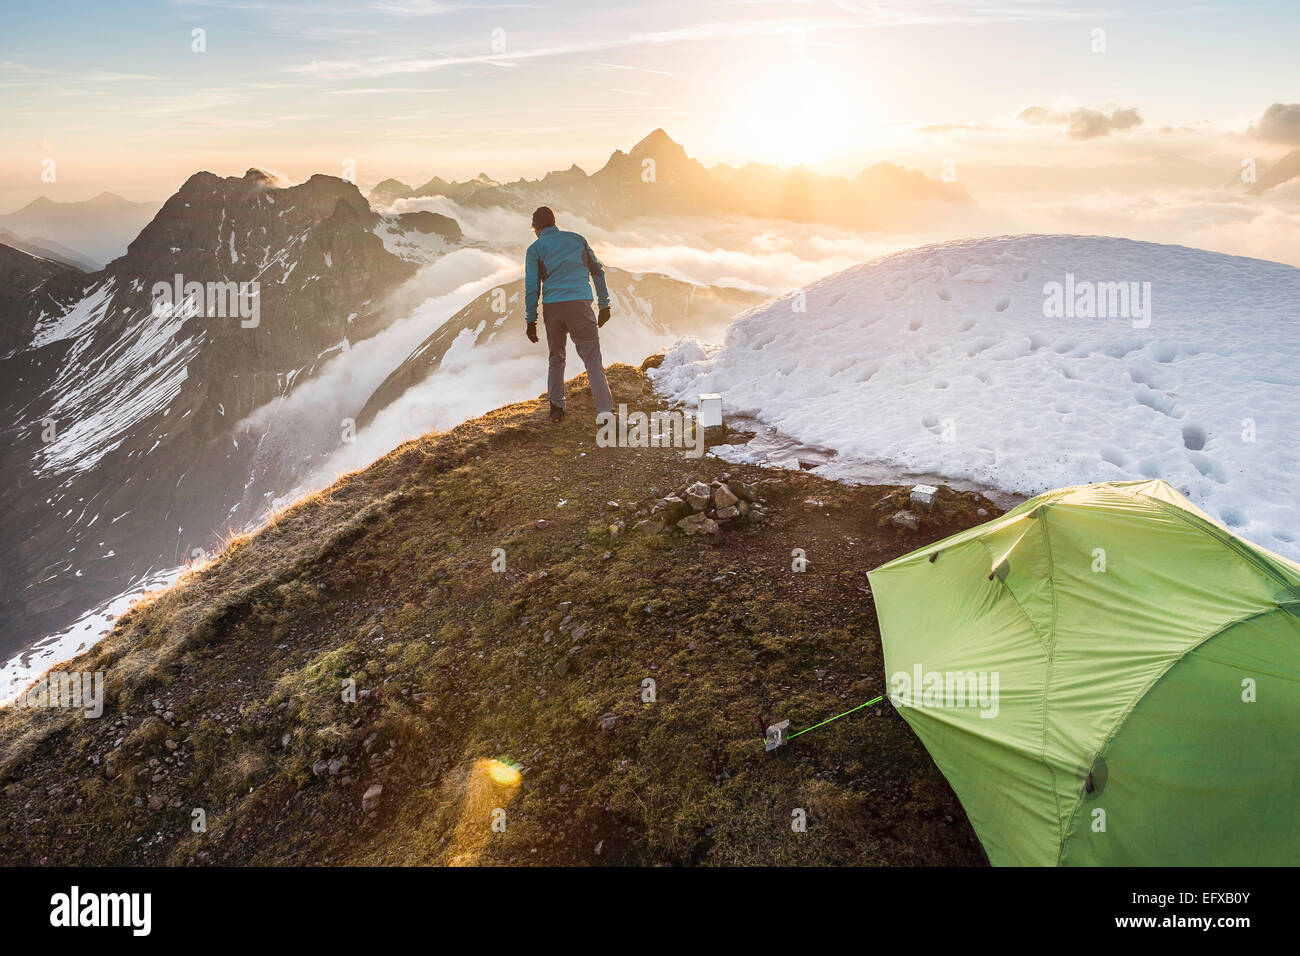 Young male camper looking at view, Bavarian Alps, Oberstdorf, Bavaria, Germany - Stock Image